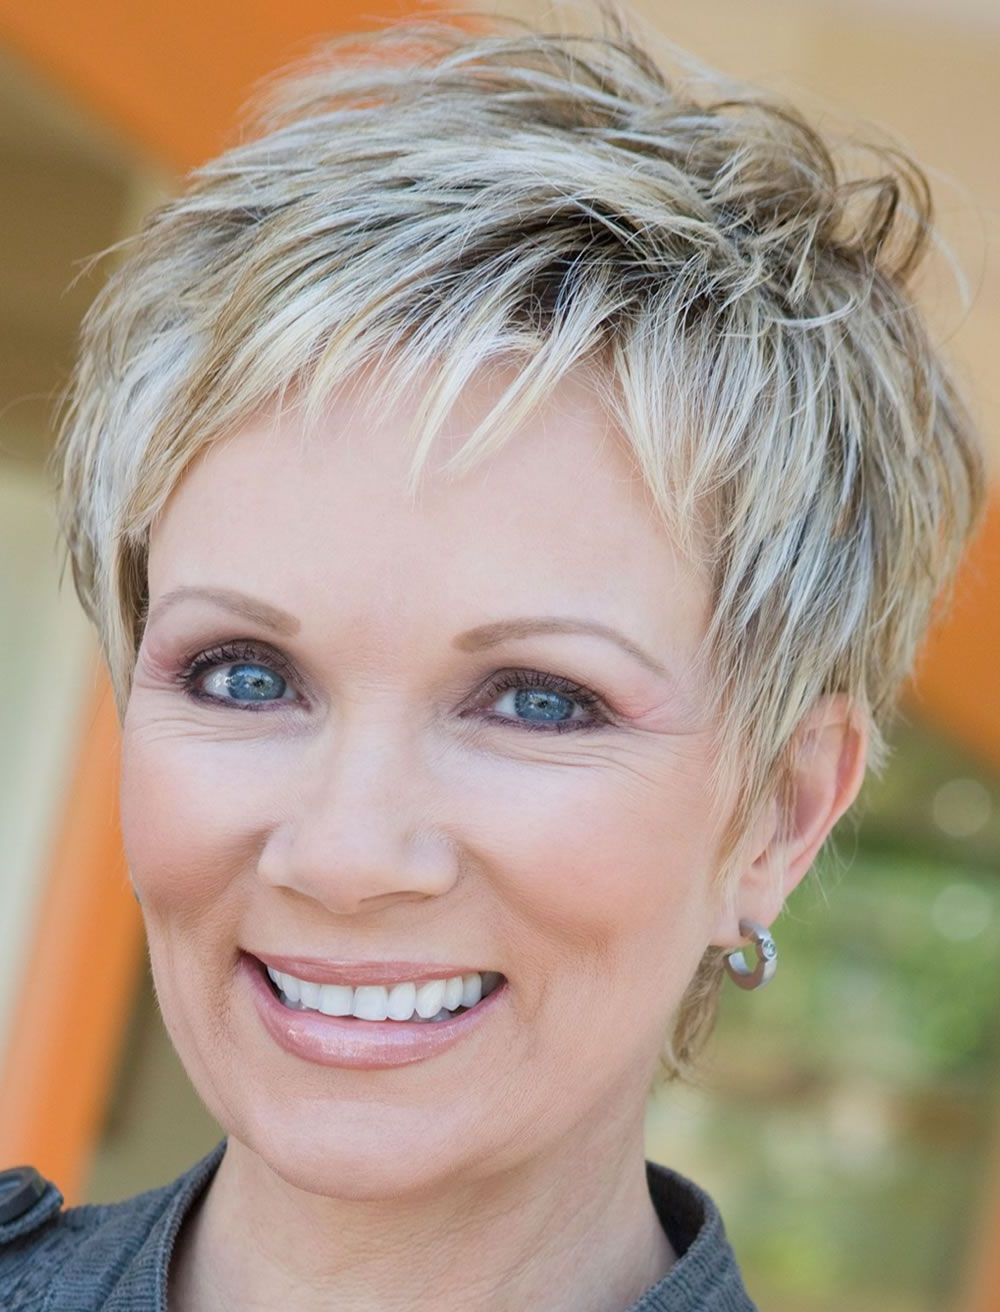 2018 Pixie Hairstyles And Haircuts For Women Over 40 To 60 Page 2 Throughout Ruffled Pixie Hairstyles (View 7 of 20)